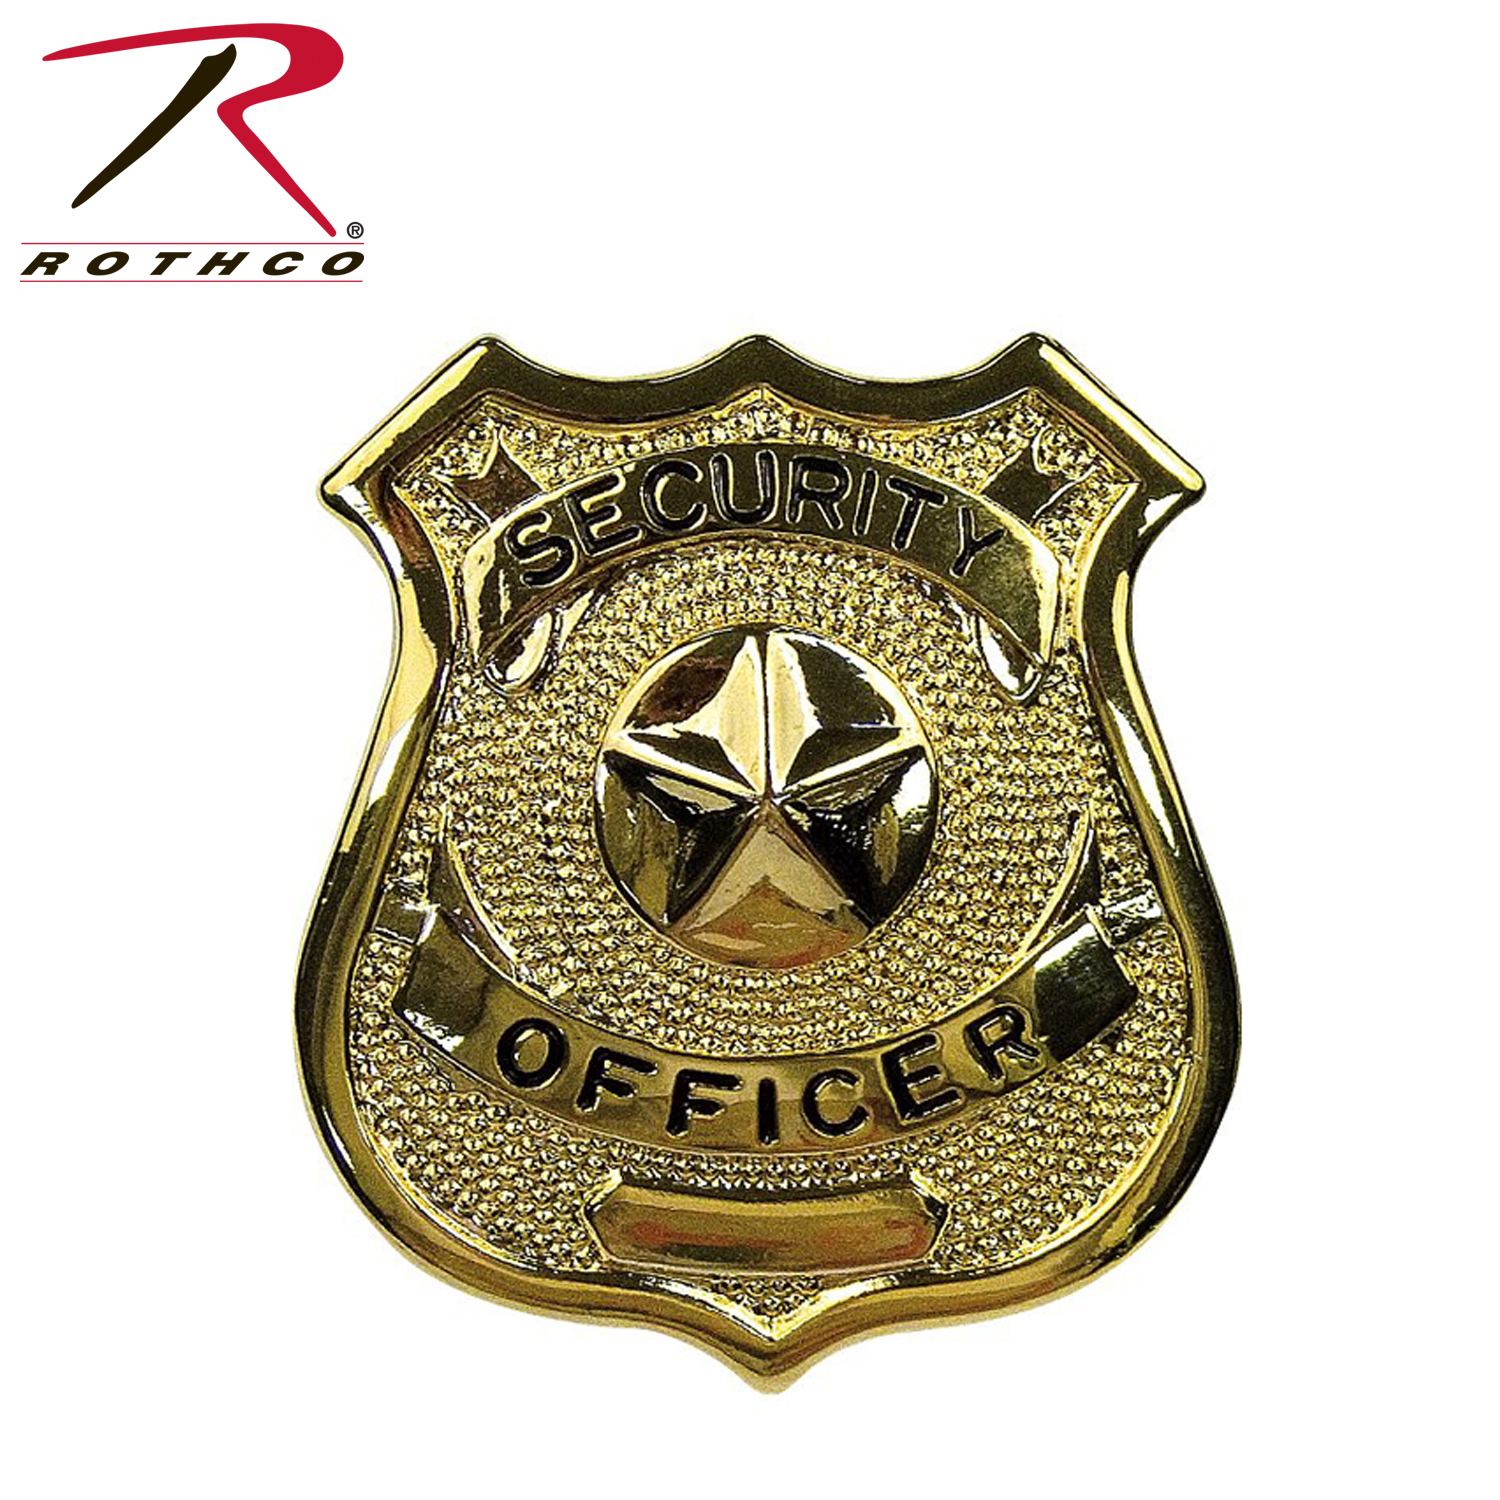 st company police shield sterling michael silver catholic the saint pendant badge medal